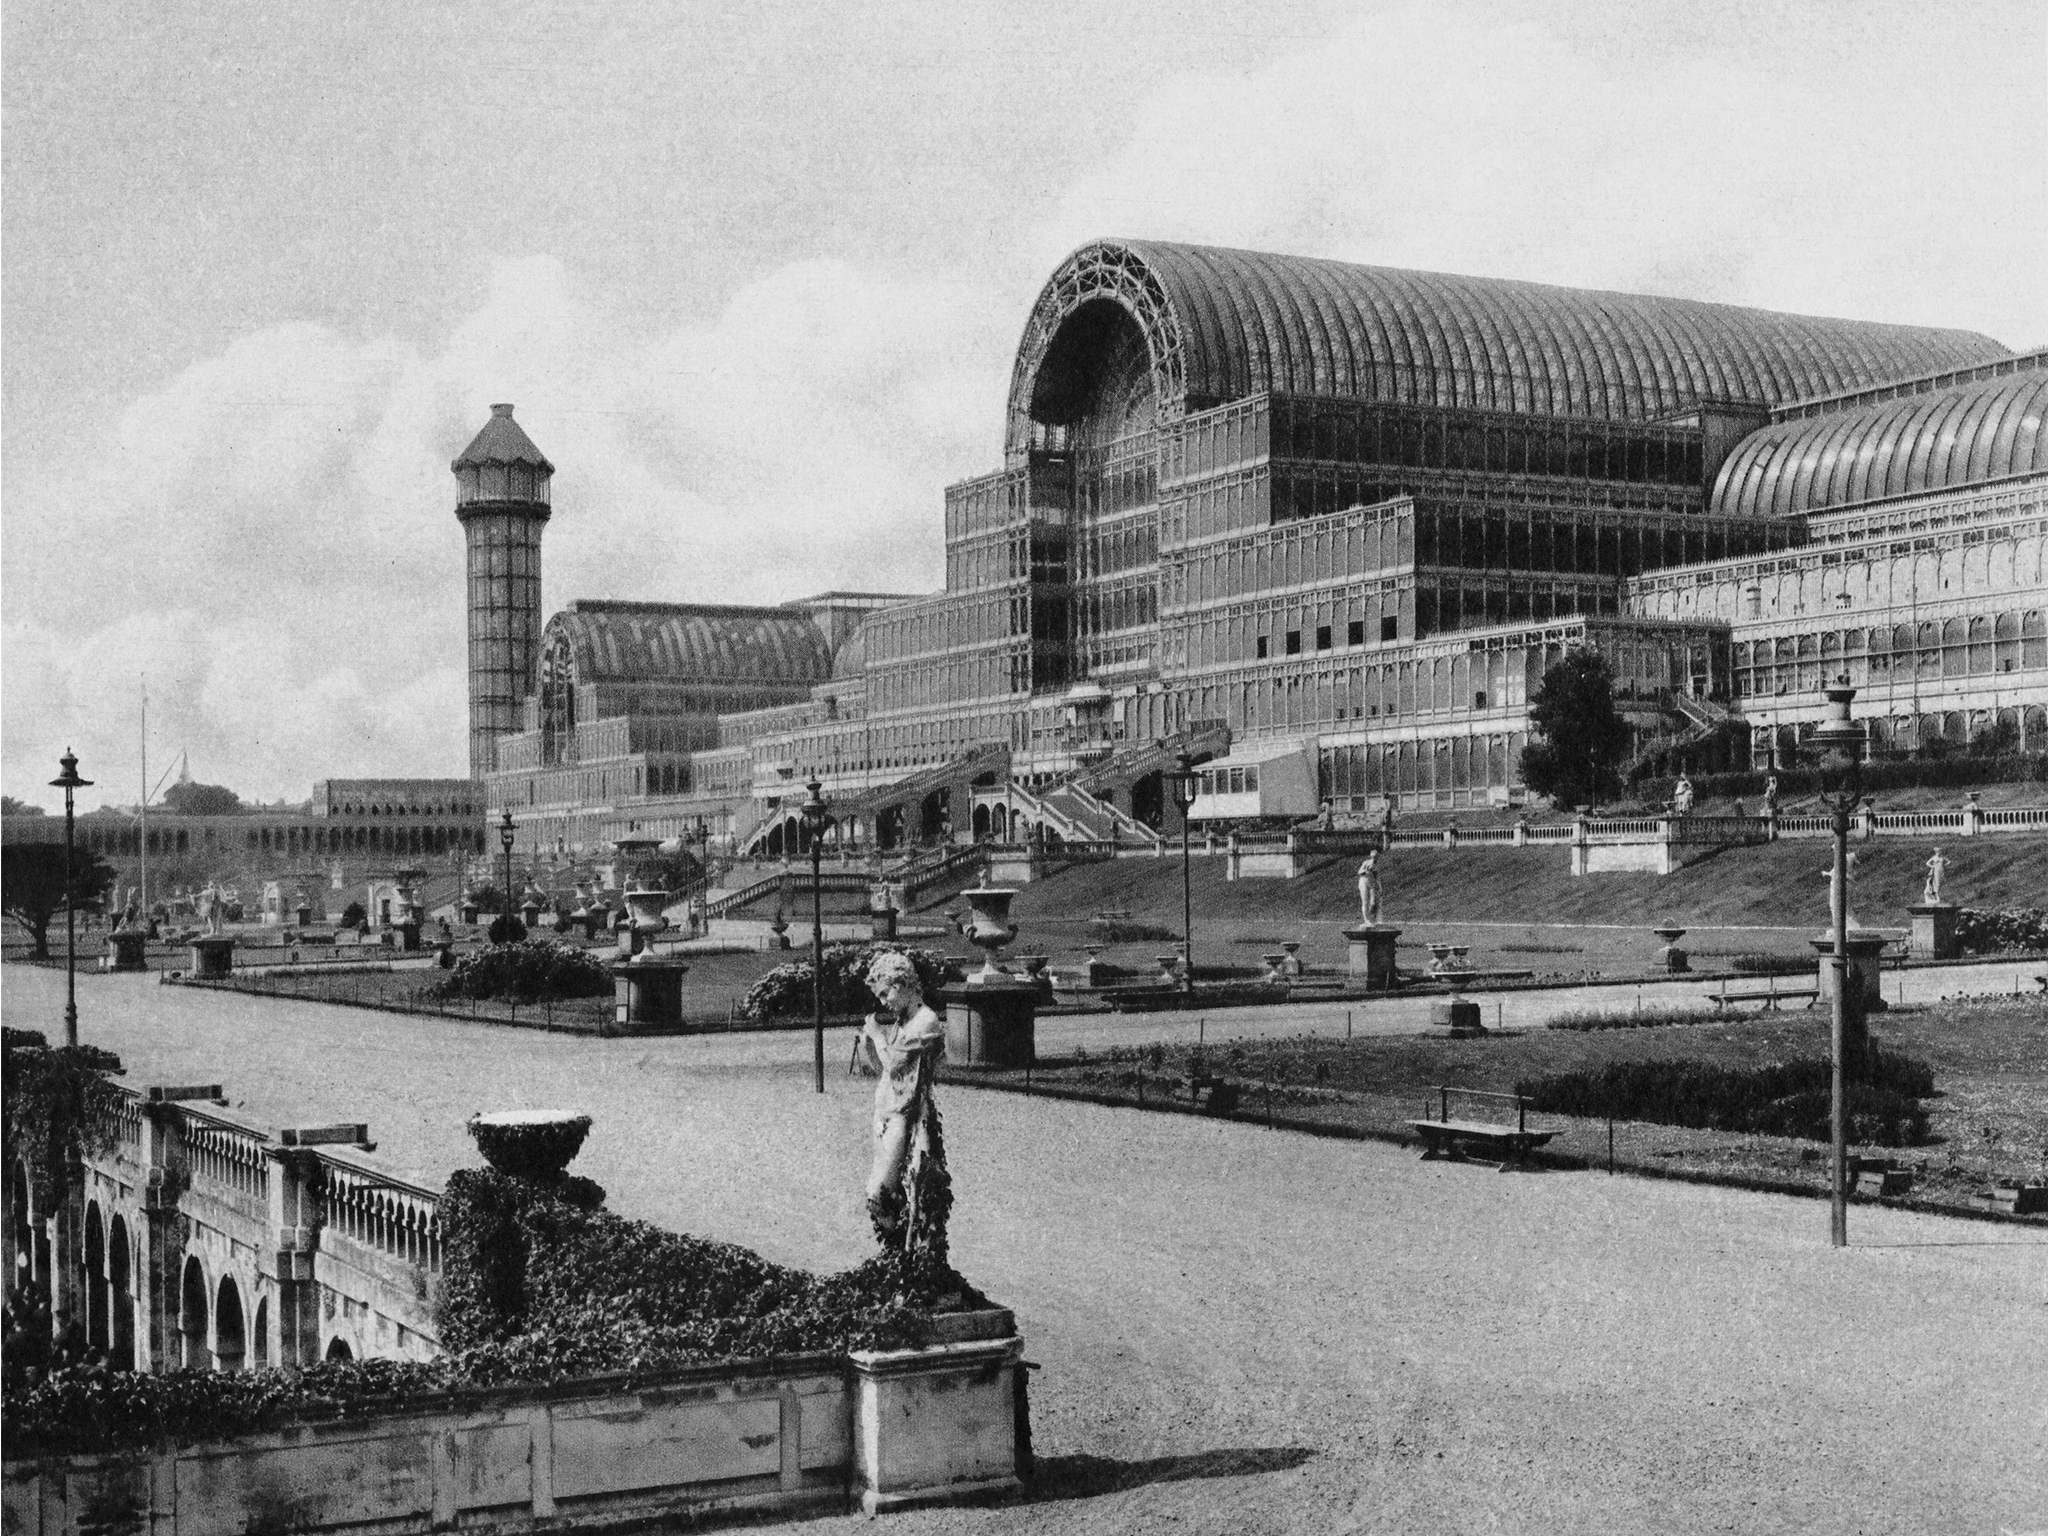 Lost London: The Crystal Palace